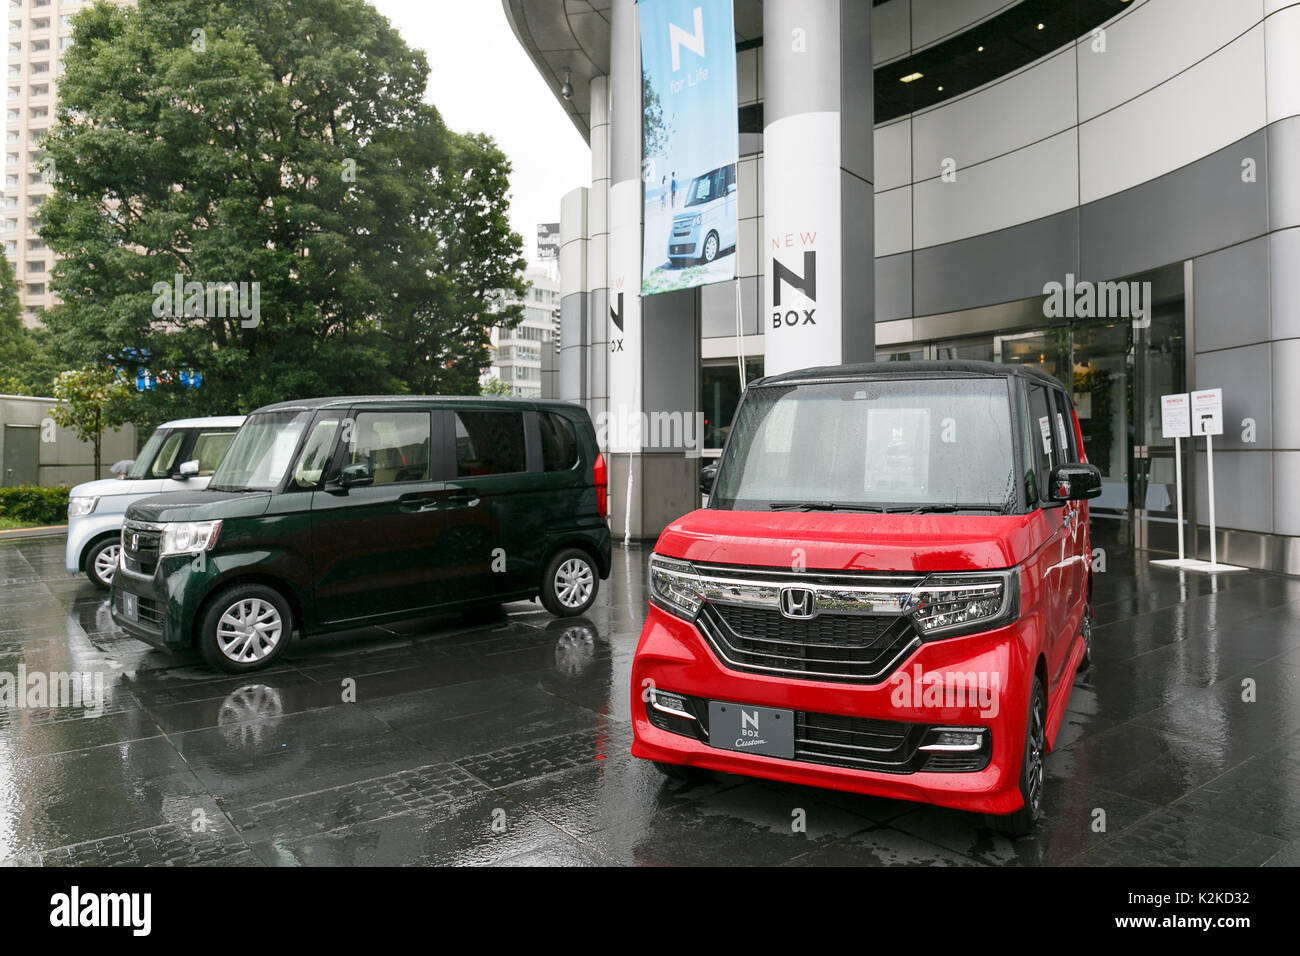 Honda Motor Cos New N BOX Mini Vehicles On Display Outside Its Headquarters August 31 2017 Tokyo Japan The Is First Vehicle